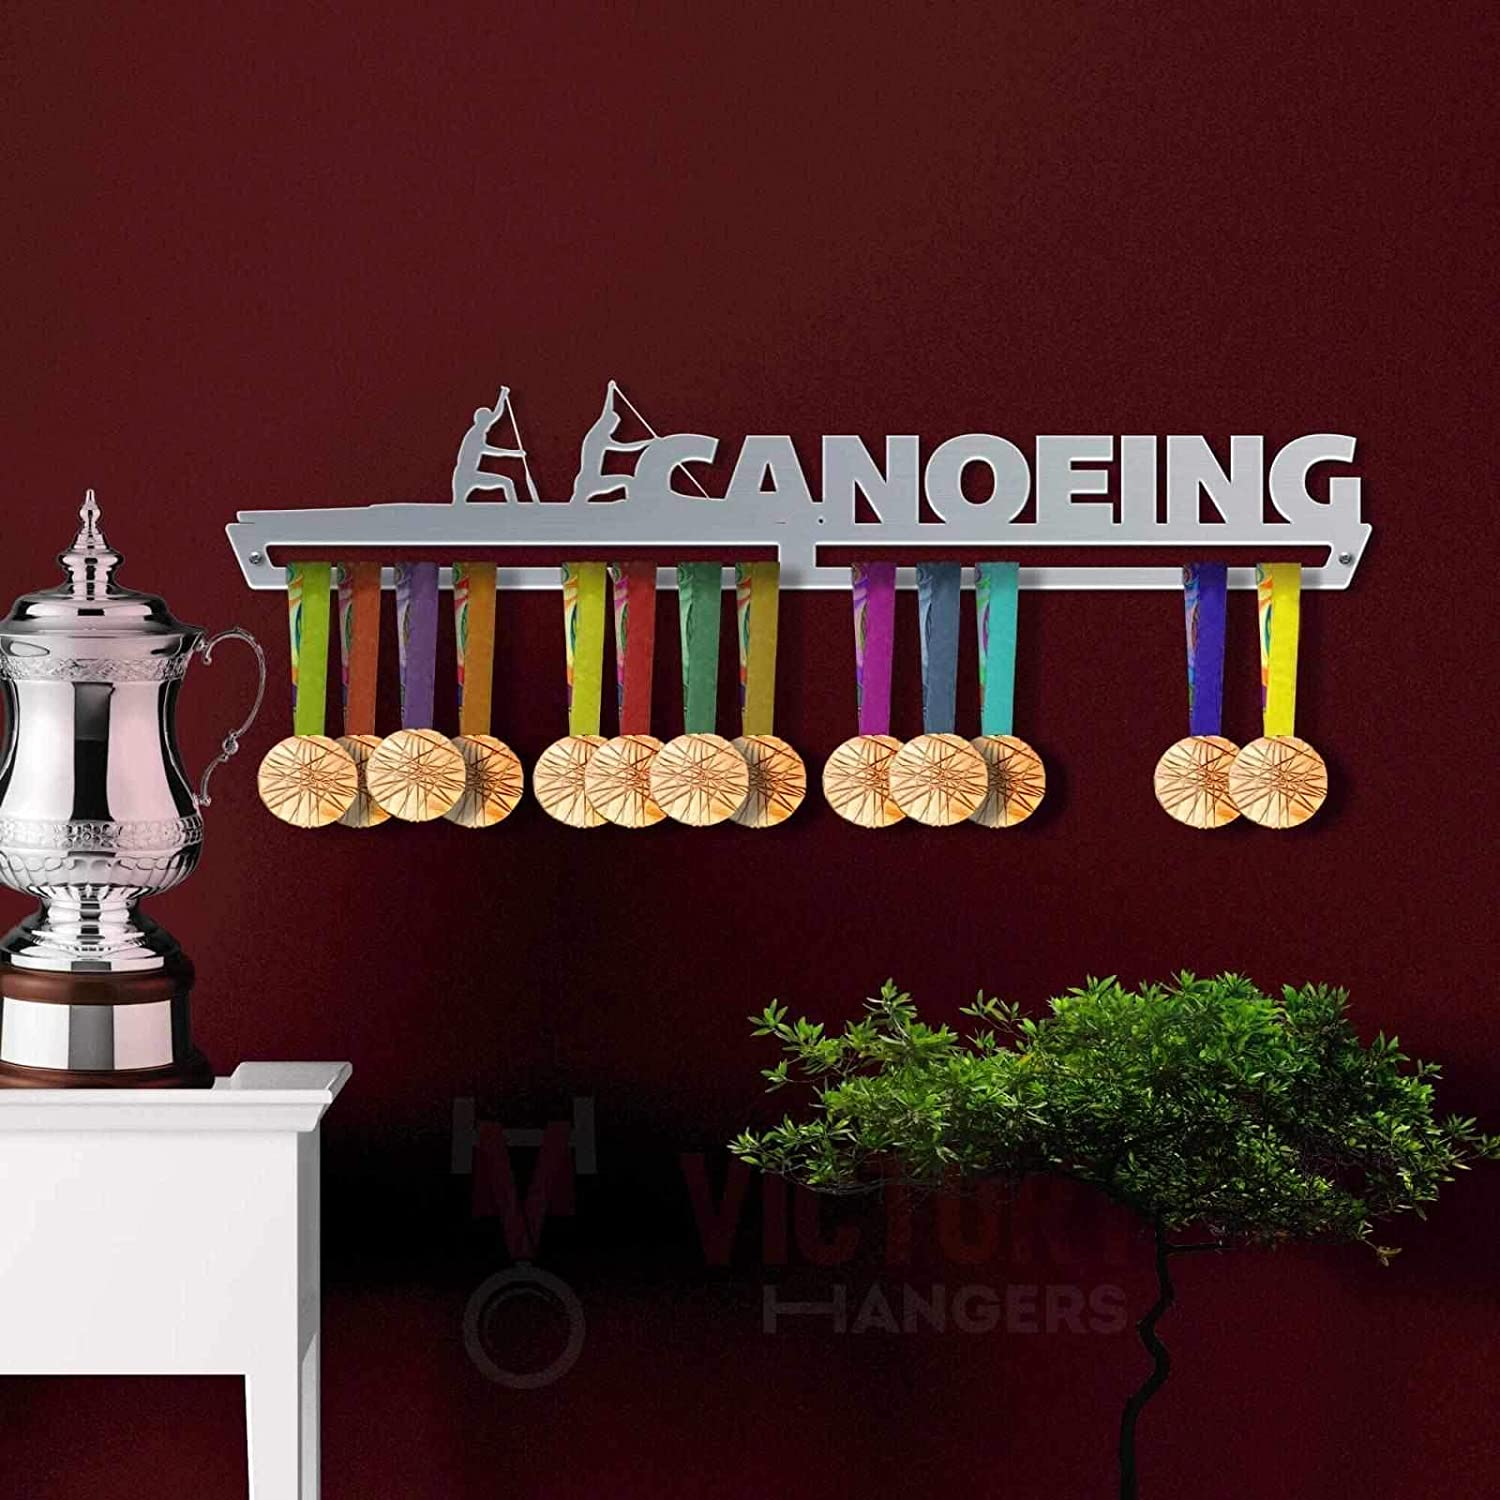 VICTORY HANGERS Canoeing Medal Hanger Display The Best Gift for Champions ! Sports Medal Holders by VictoryHangers Stainless Steel Medal Display